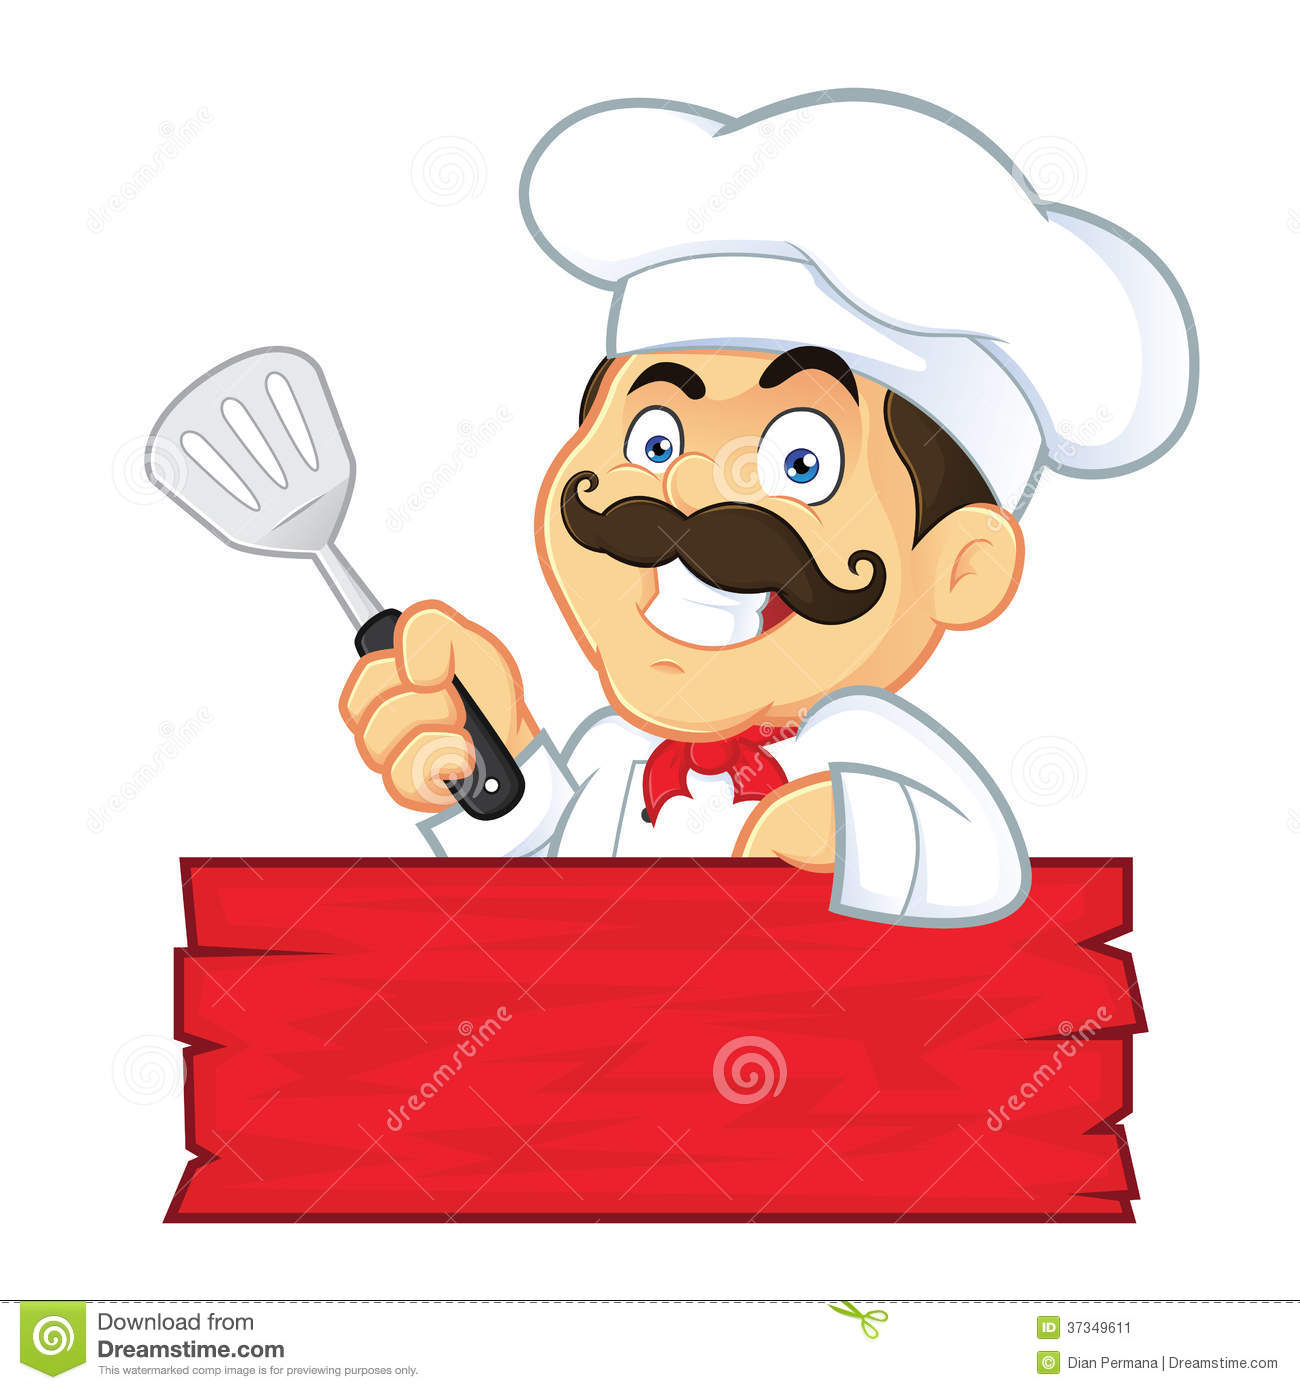 chef holding spatula stock vector illustration of graphic clip art chef cooking clip art chefs